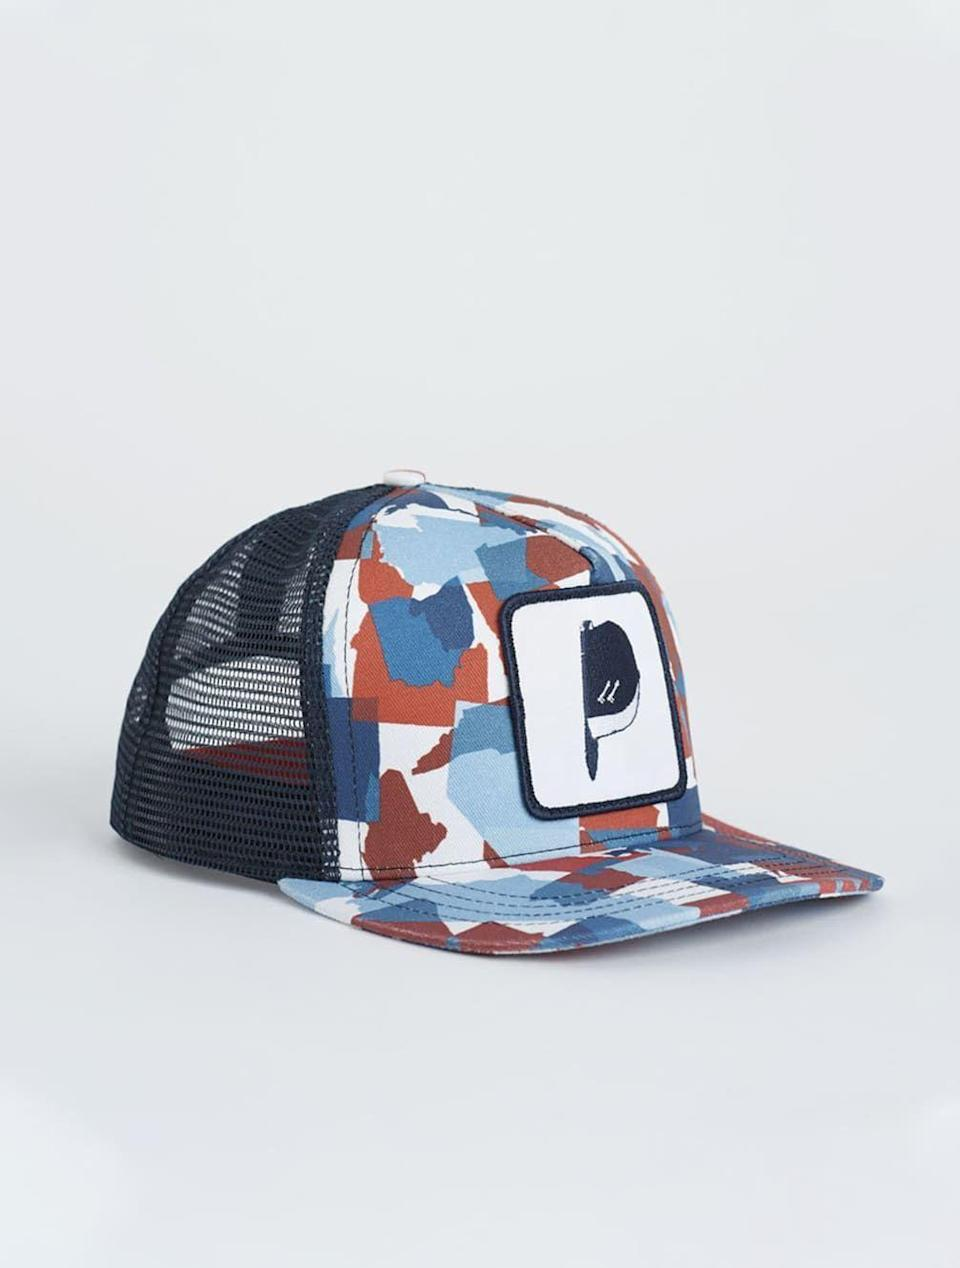 """<p><strong>United States of Camo</strong></p><p>unitedstatesofcamo.com</p><p><strong>$40.00</strong></p><p><a href=""""https://unitedstatesofcamo.com/collections/all-products/products/nantucket-red-trucker"""" rel=""""nofollow noopener"""" target=""""_blank"""" data-ylk=""""slk:SHOP NOW"""" class=""""link rapid-noclick-resp"""">SHOP NOW</a></p><p>Show solidarity for our military when you sport this trucker hat—10 percent of sales go directly to supporting veterans with mental health issues. </p>"""